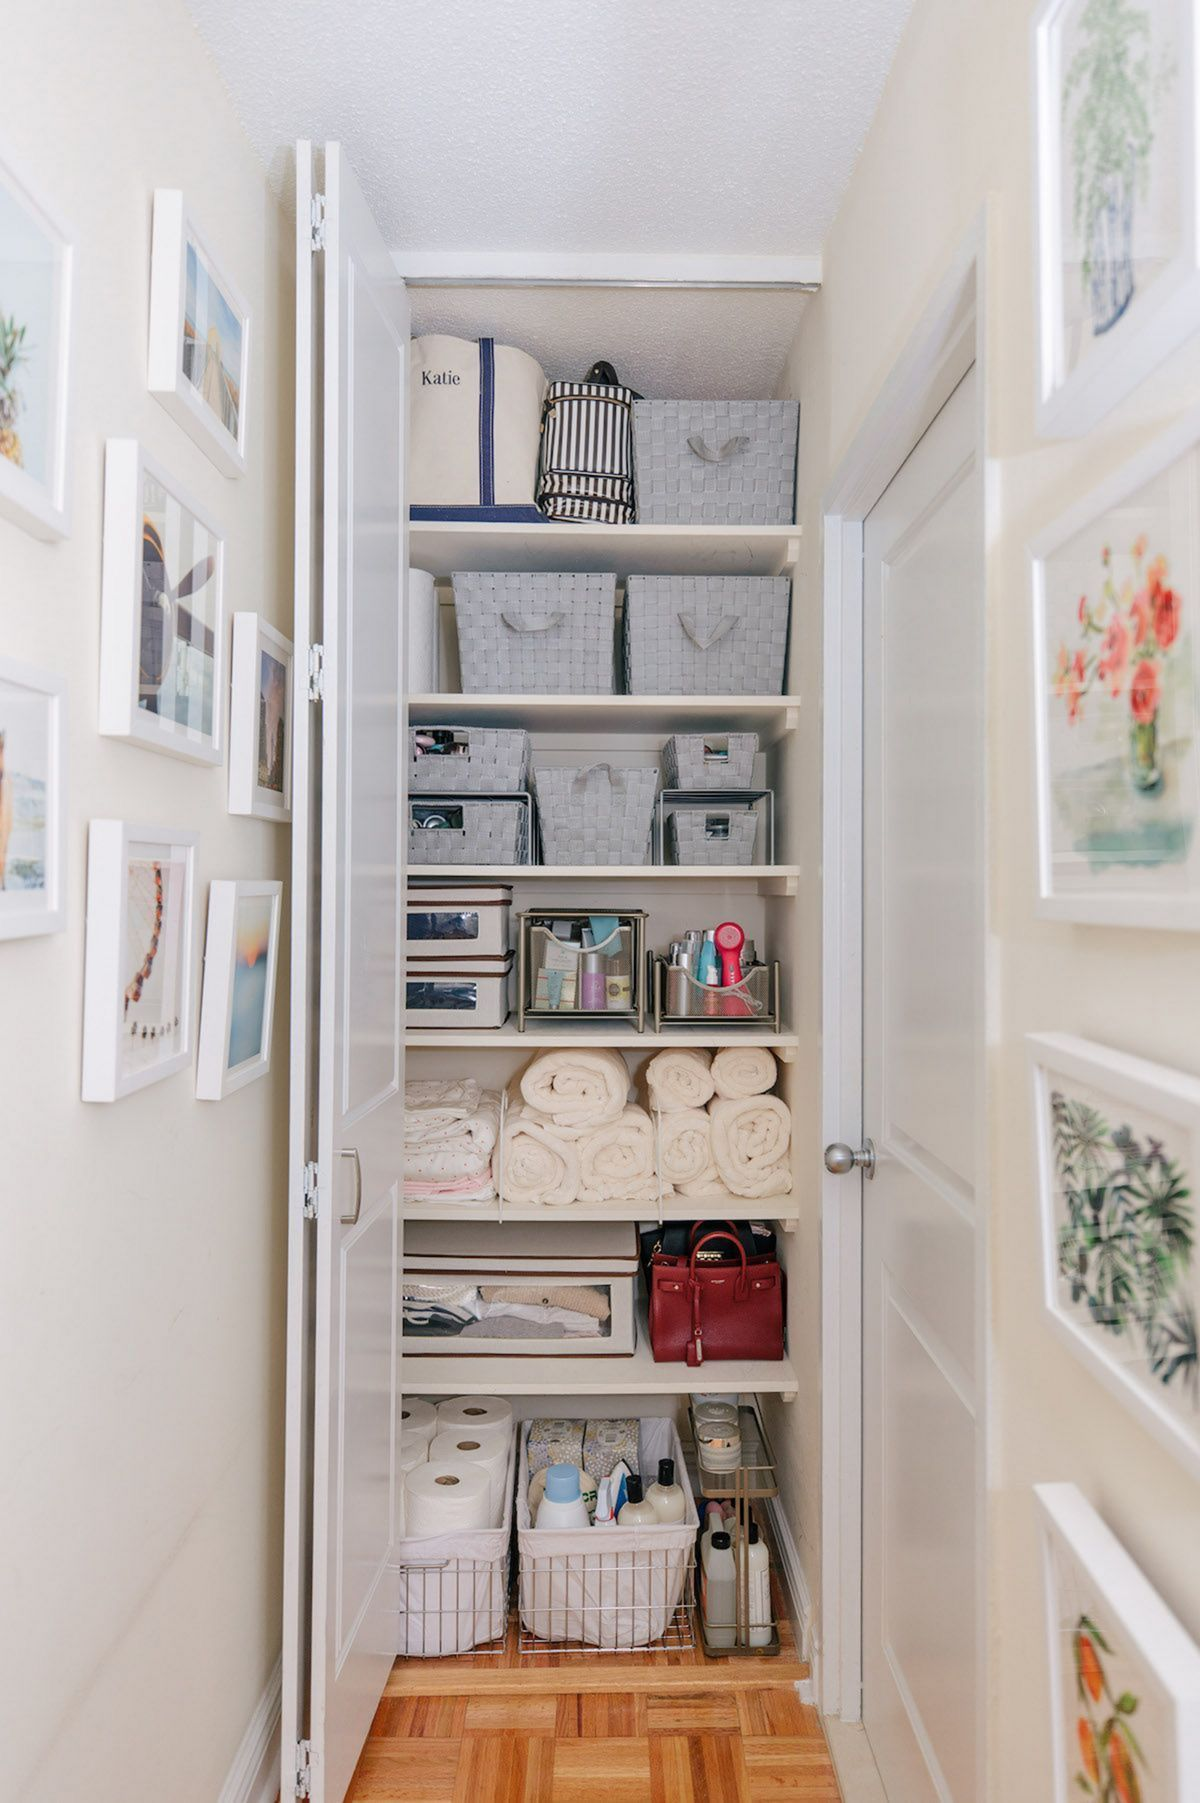 30 Awesome Life-Changing Closet Organization Ideas For Your Hallway and Bedroom images